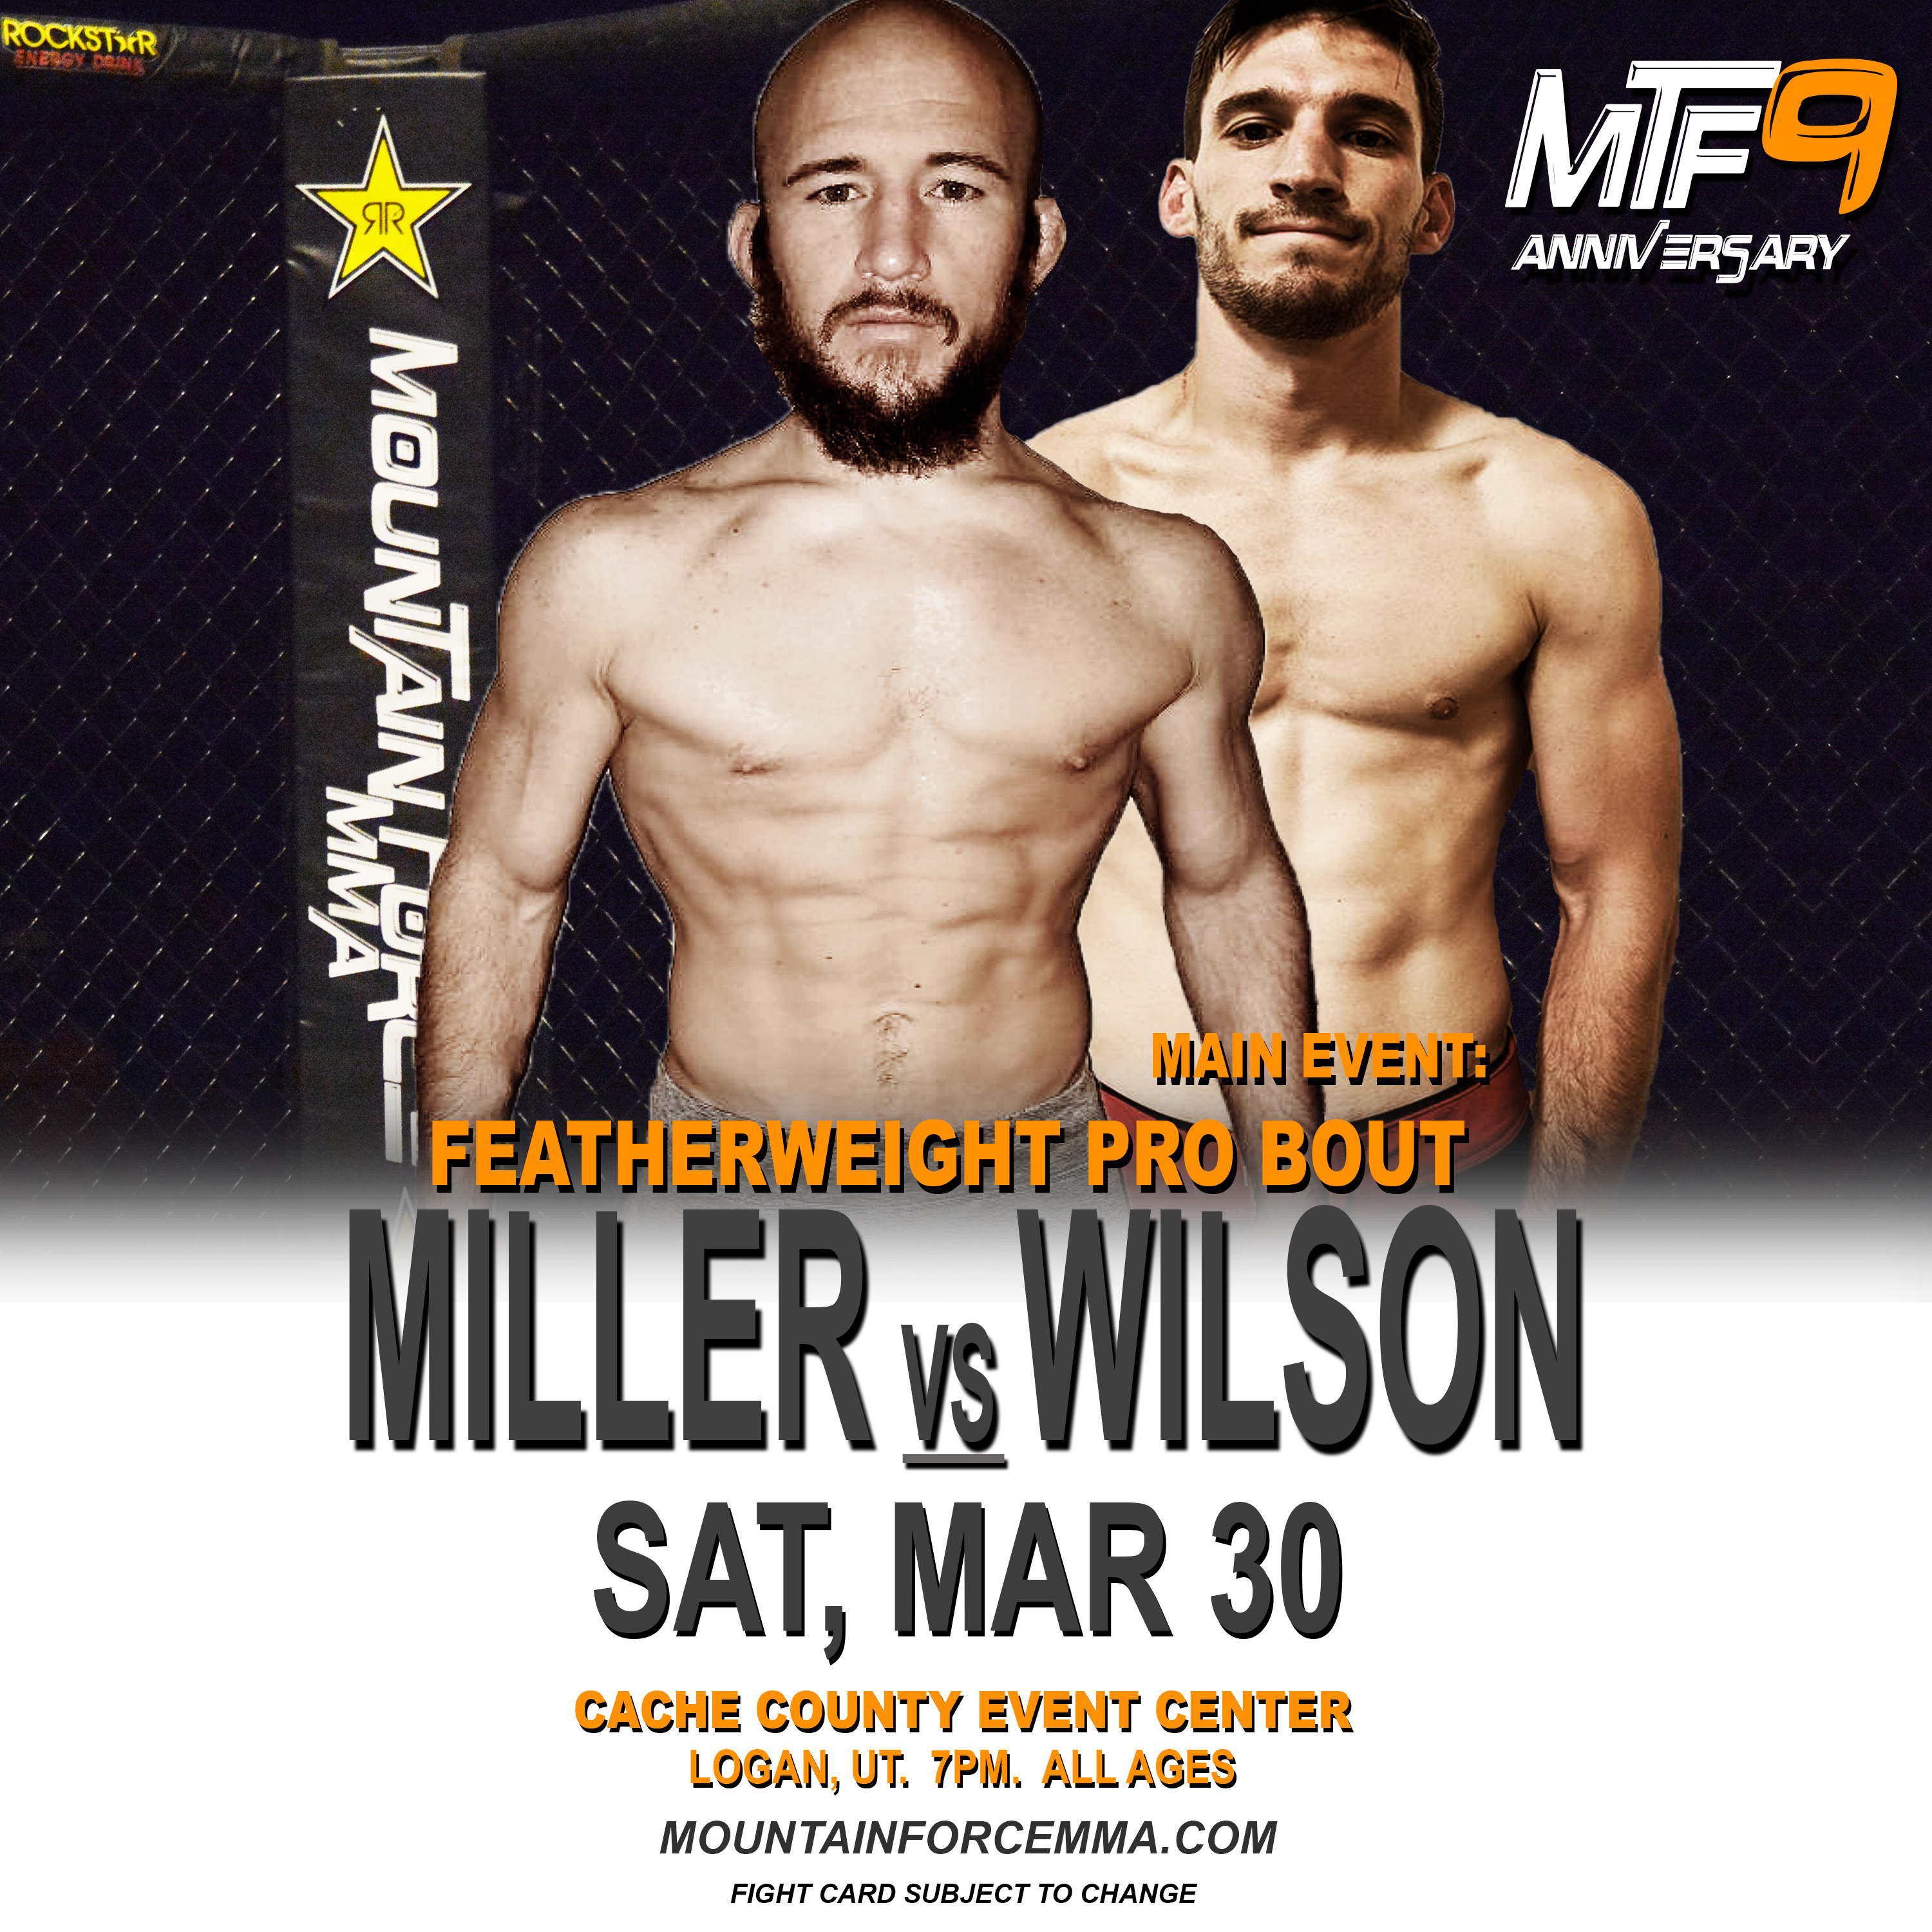 MILLER VS WILSON - FIGHT CARD MTF 9